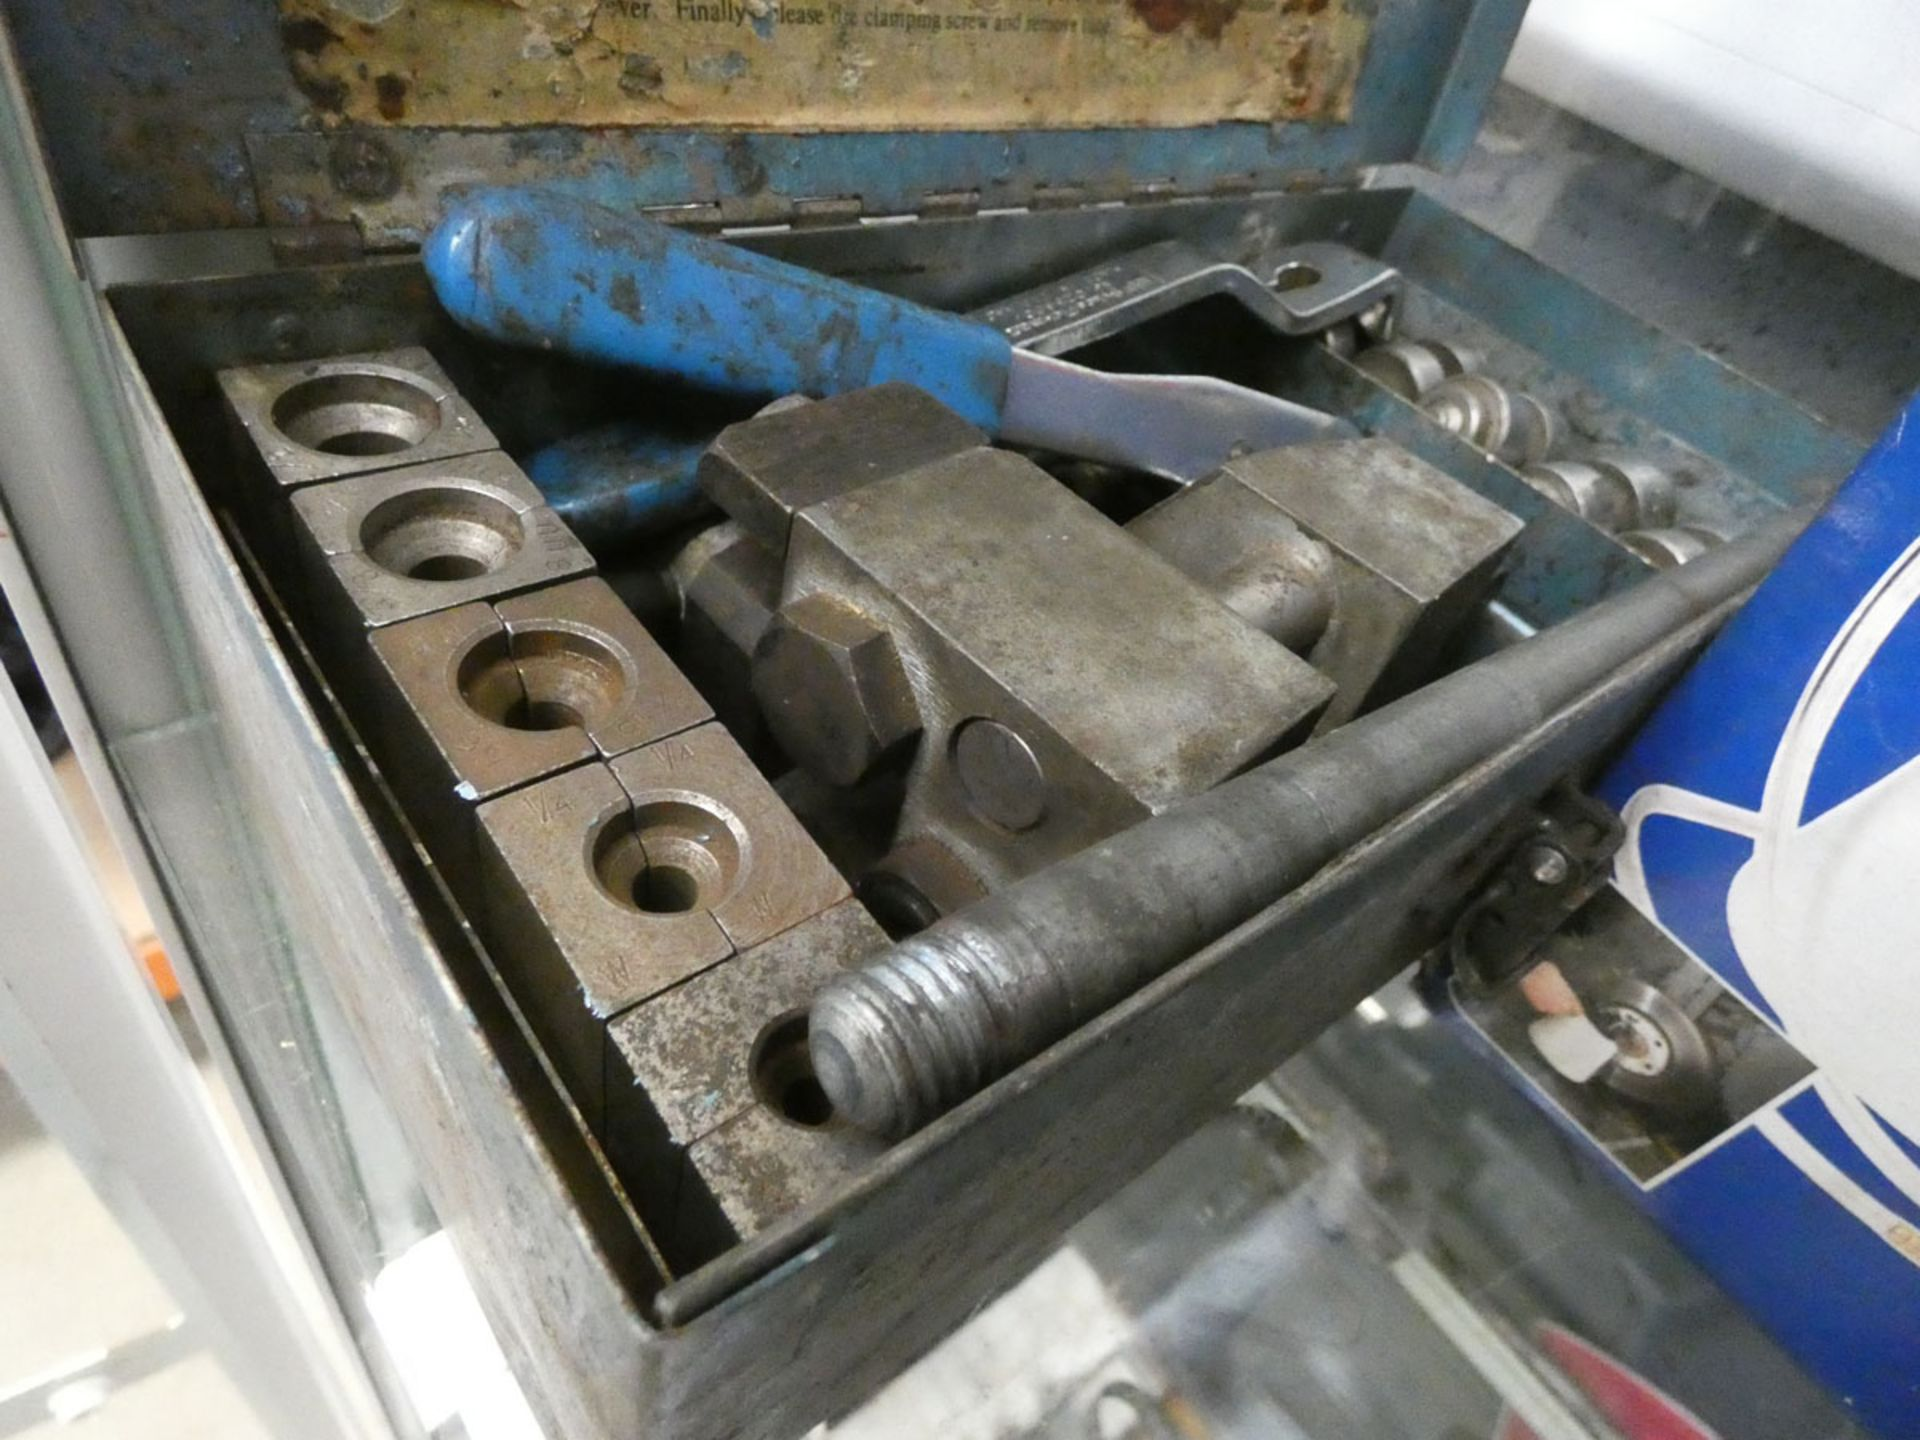 Sealey vacuum brake bleeder, Sykes-Pickavant brake flaring tool kit and a Sykes-Pickavant vacuum - Image 3 of 3